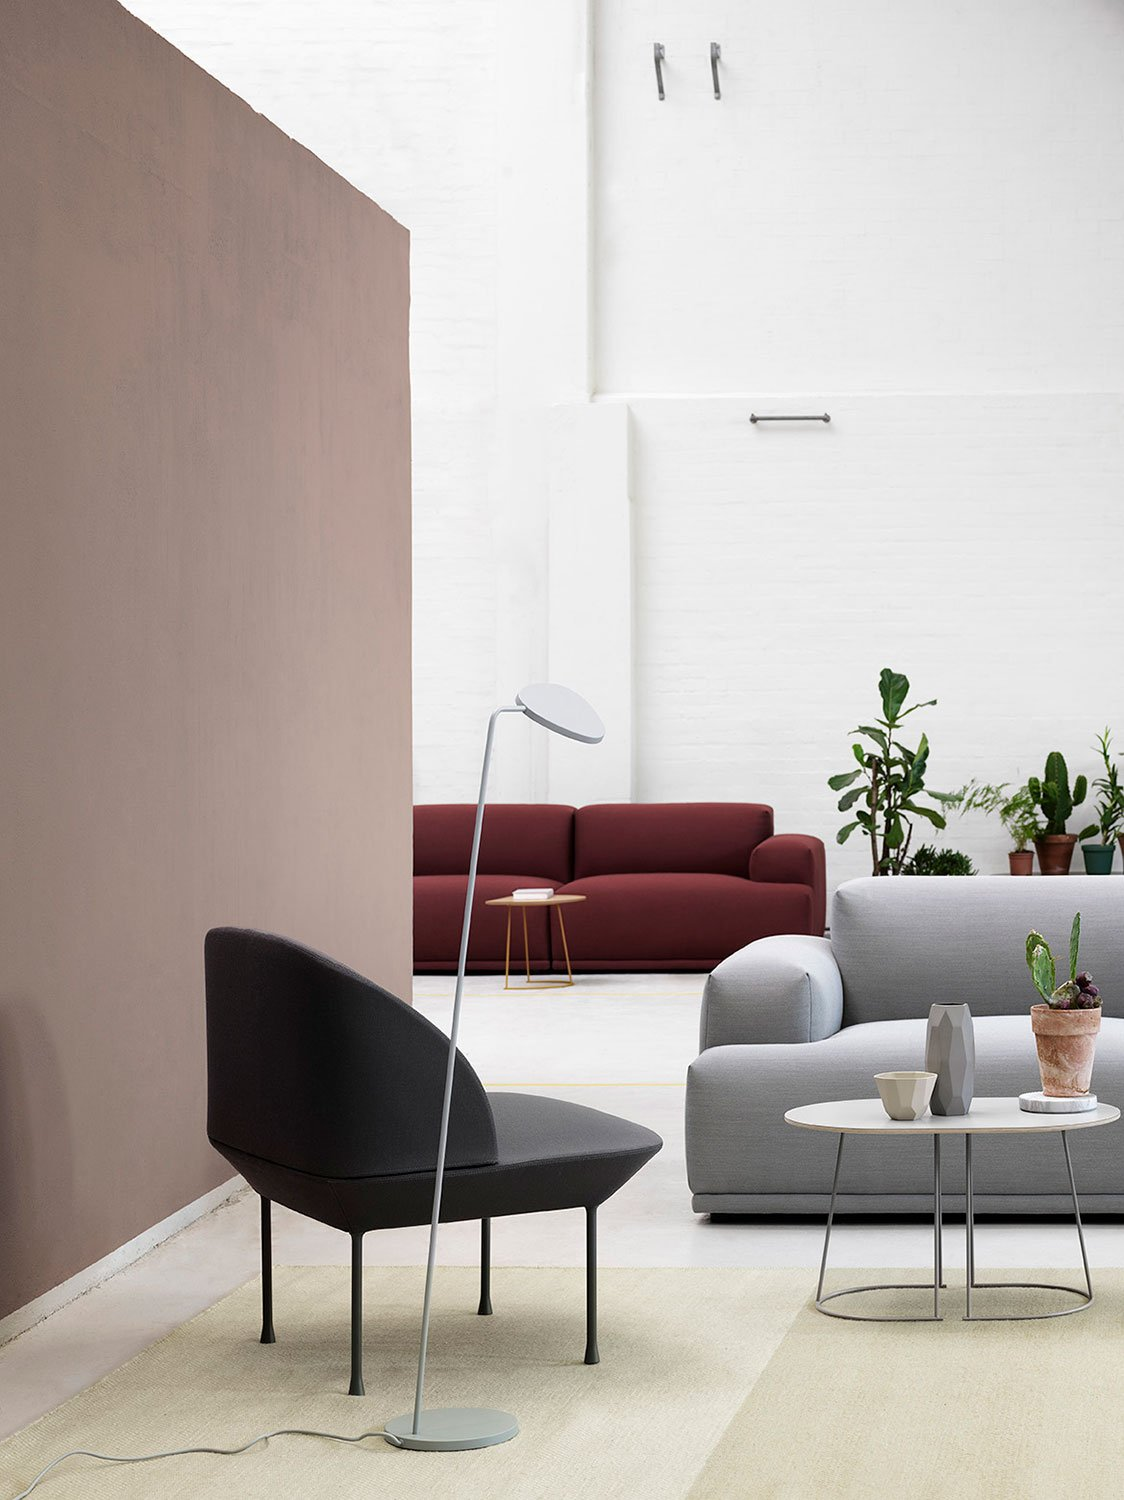 Muuto Connect Series_Airy Table_Oslo Side Chair_Leaf Lamp